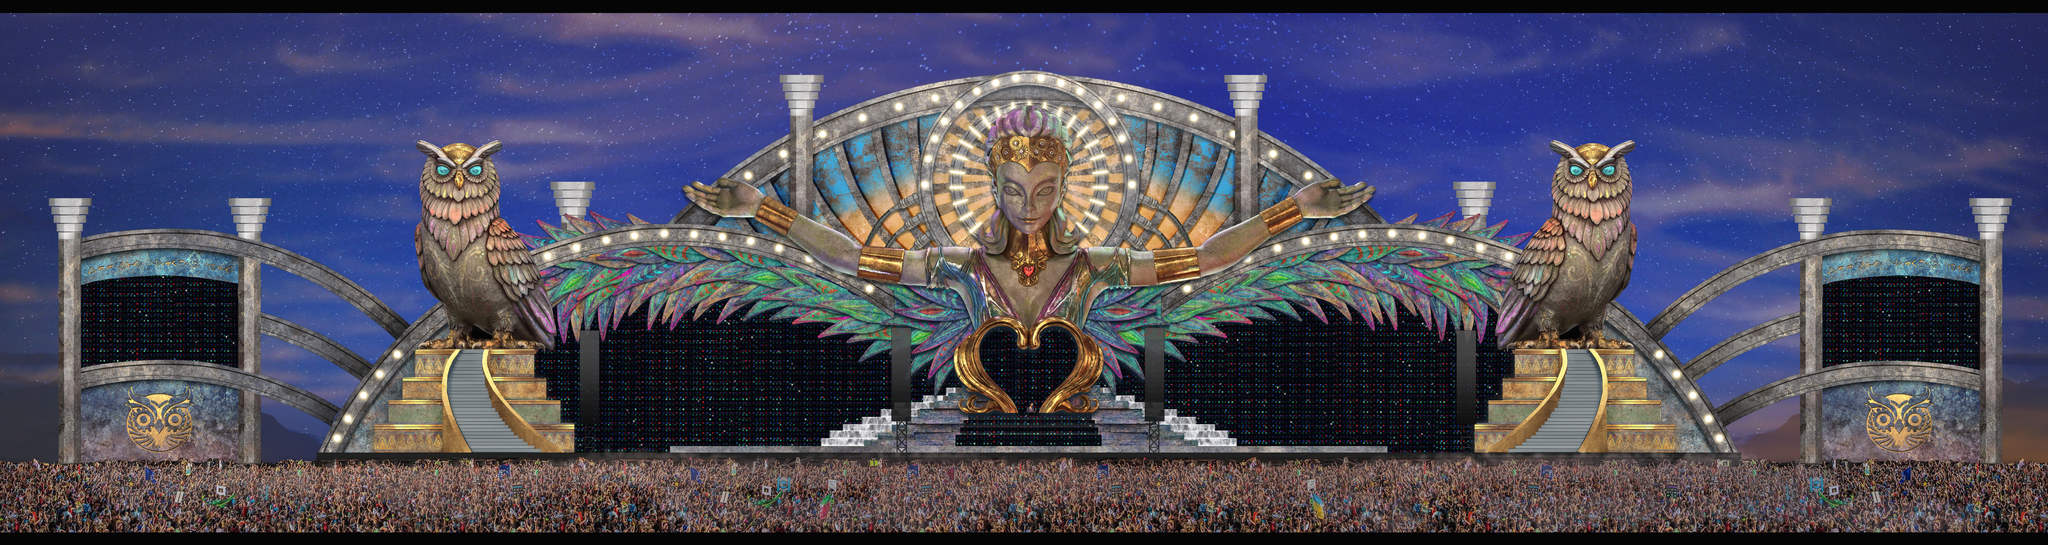 3D stage design of the Kinetic Field stage at EDC 2017